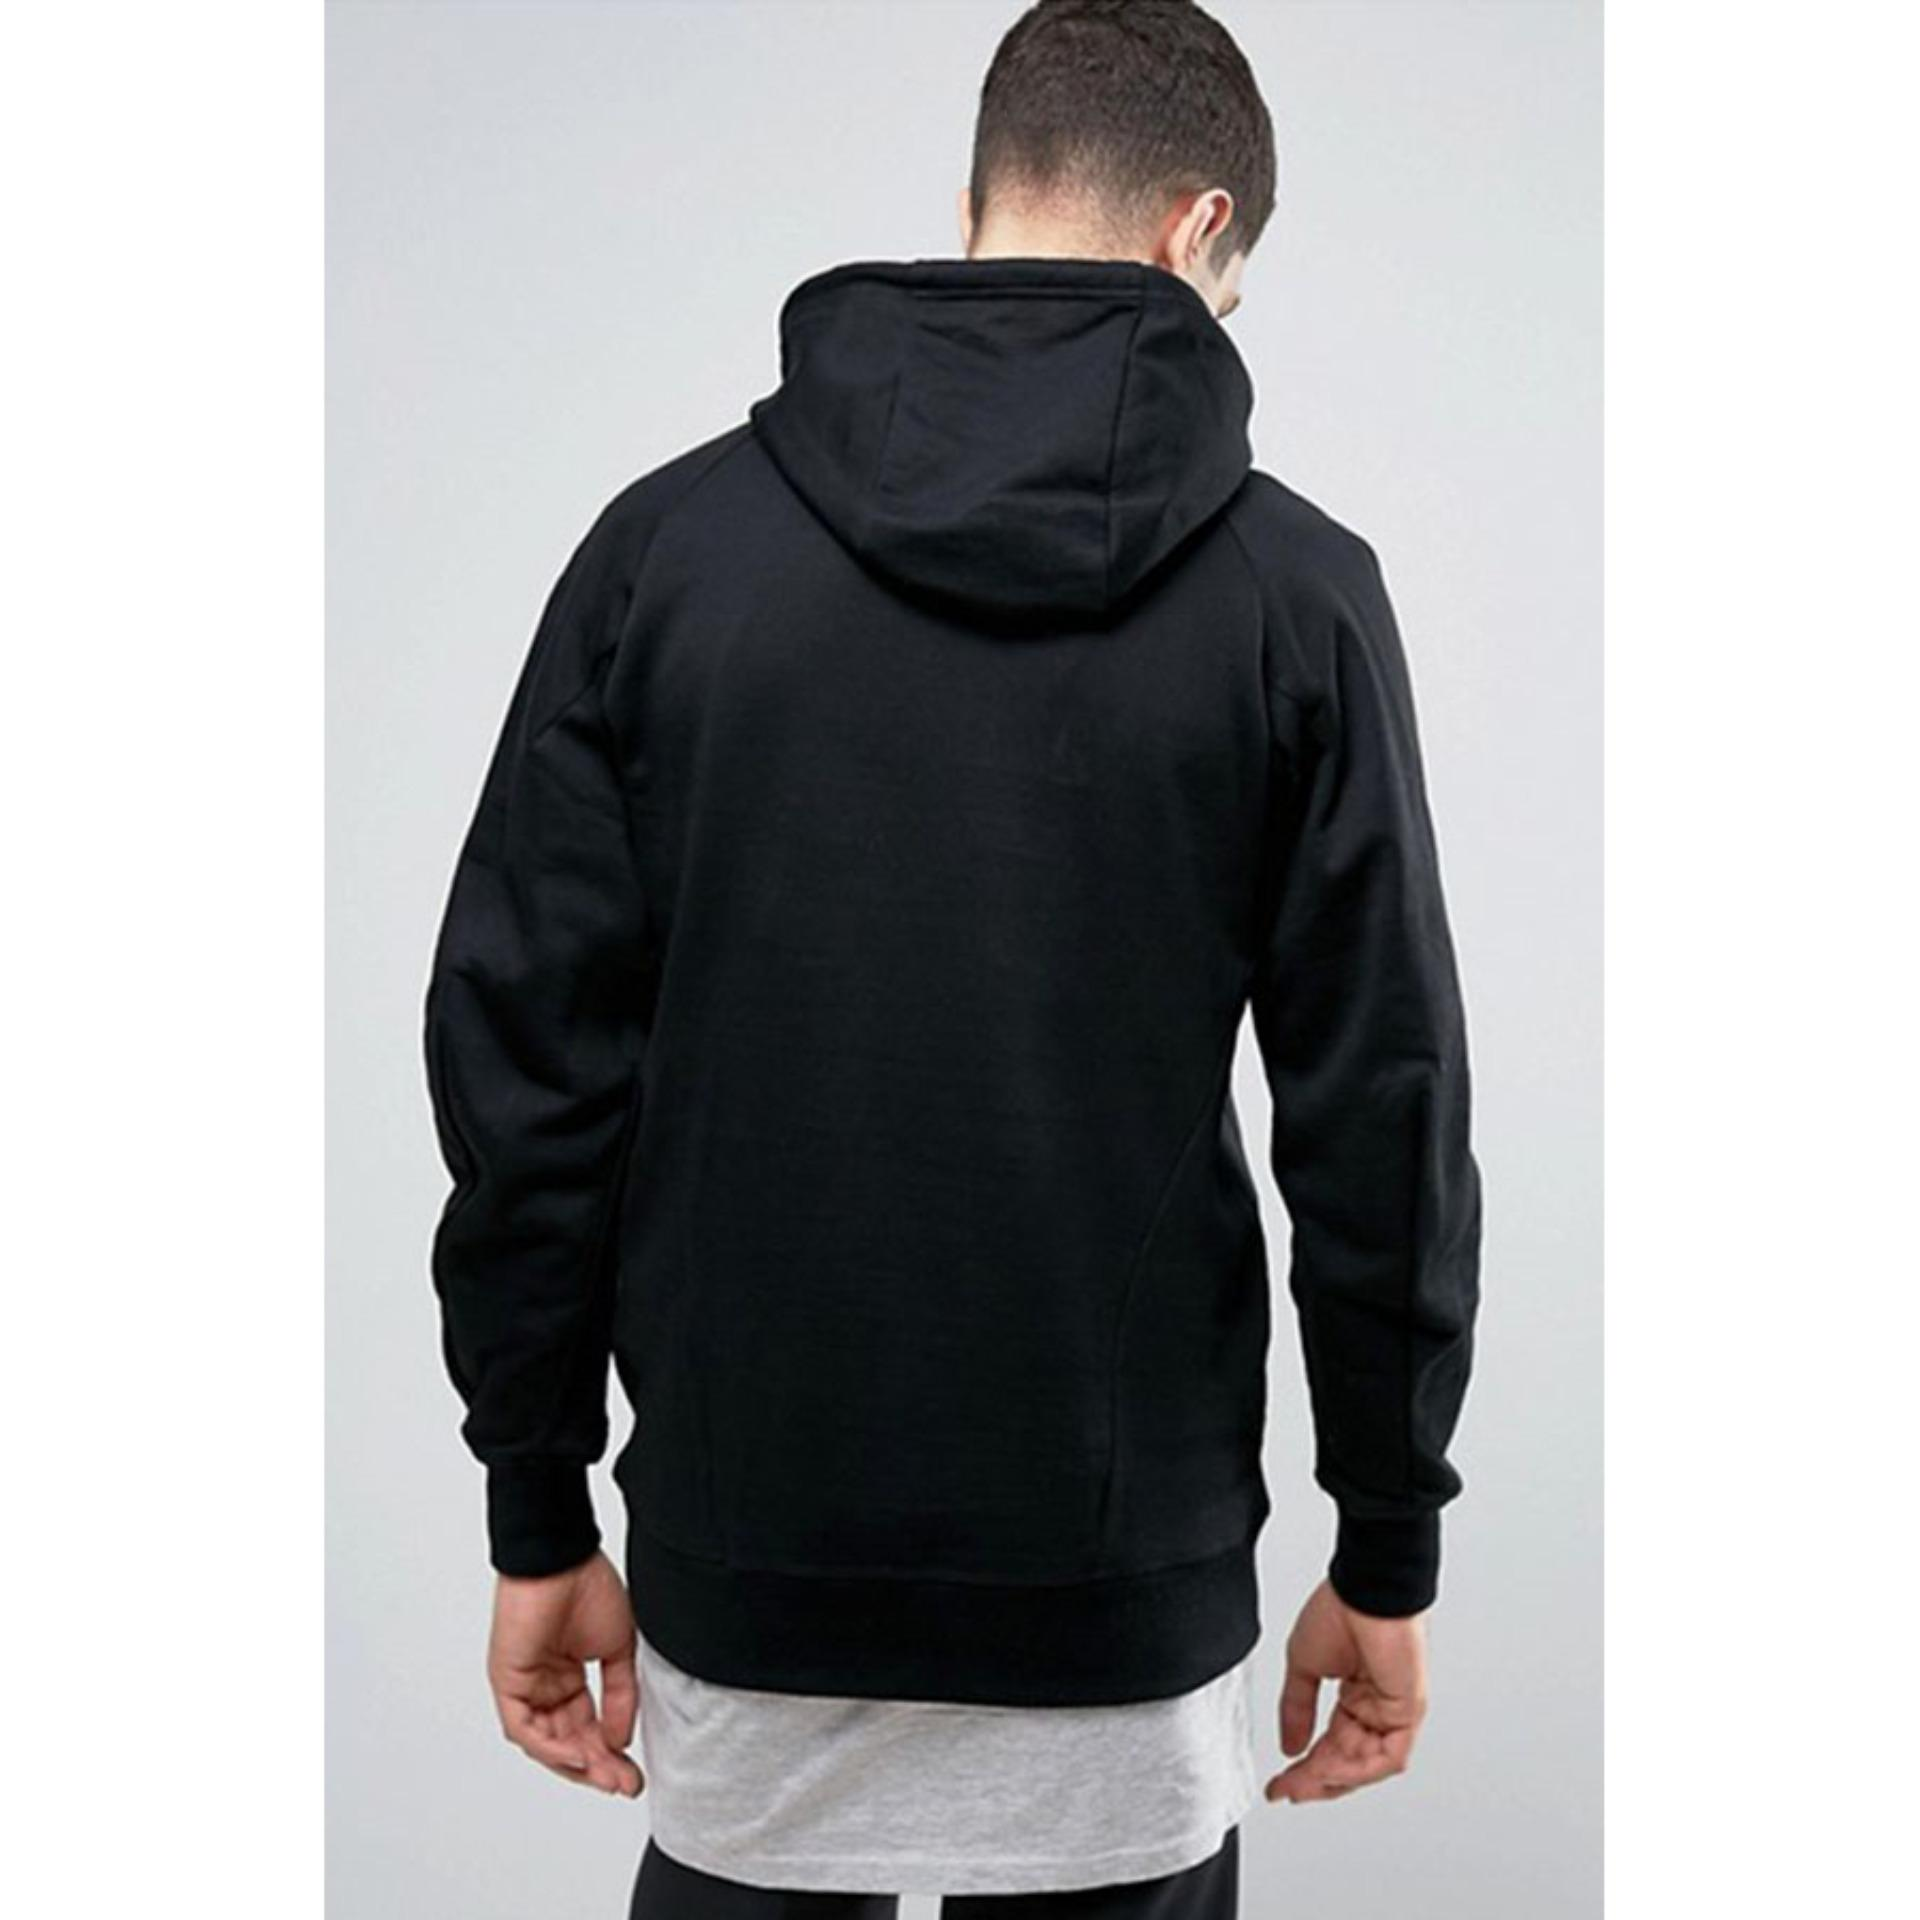 al ikhsaN Online Shop Source · Topi Chelsea Hitam Source Just Cloth Jaket Pullover Hoodie The Reds Liverpool